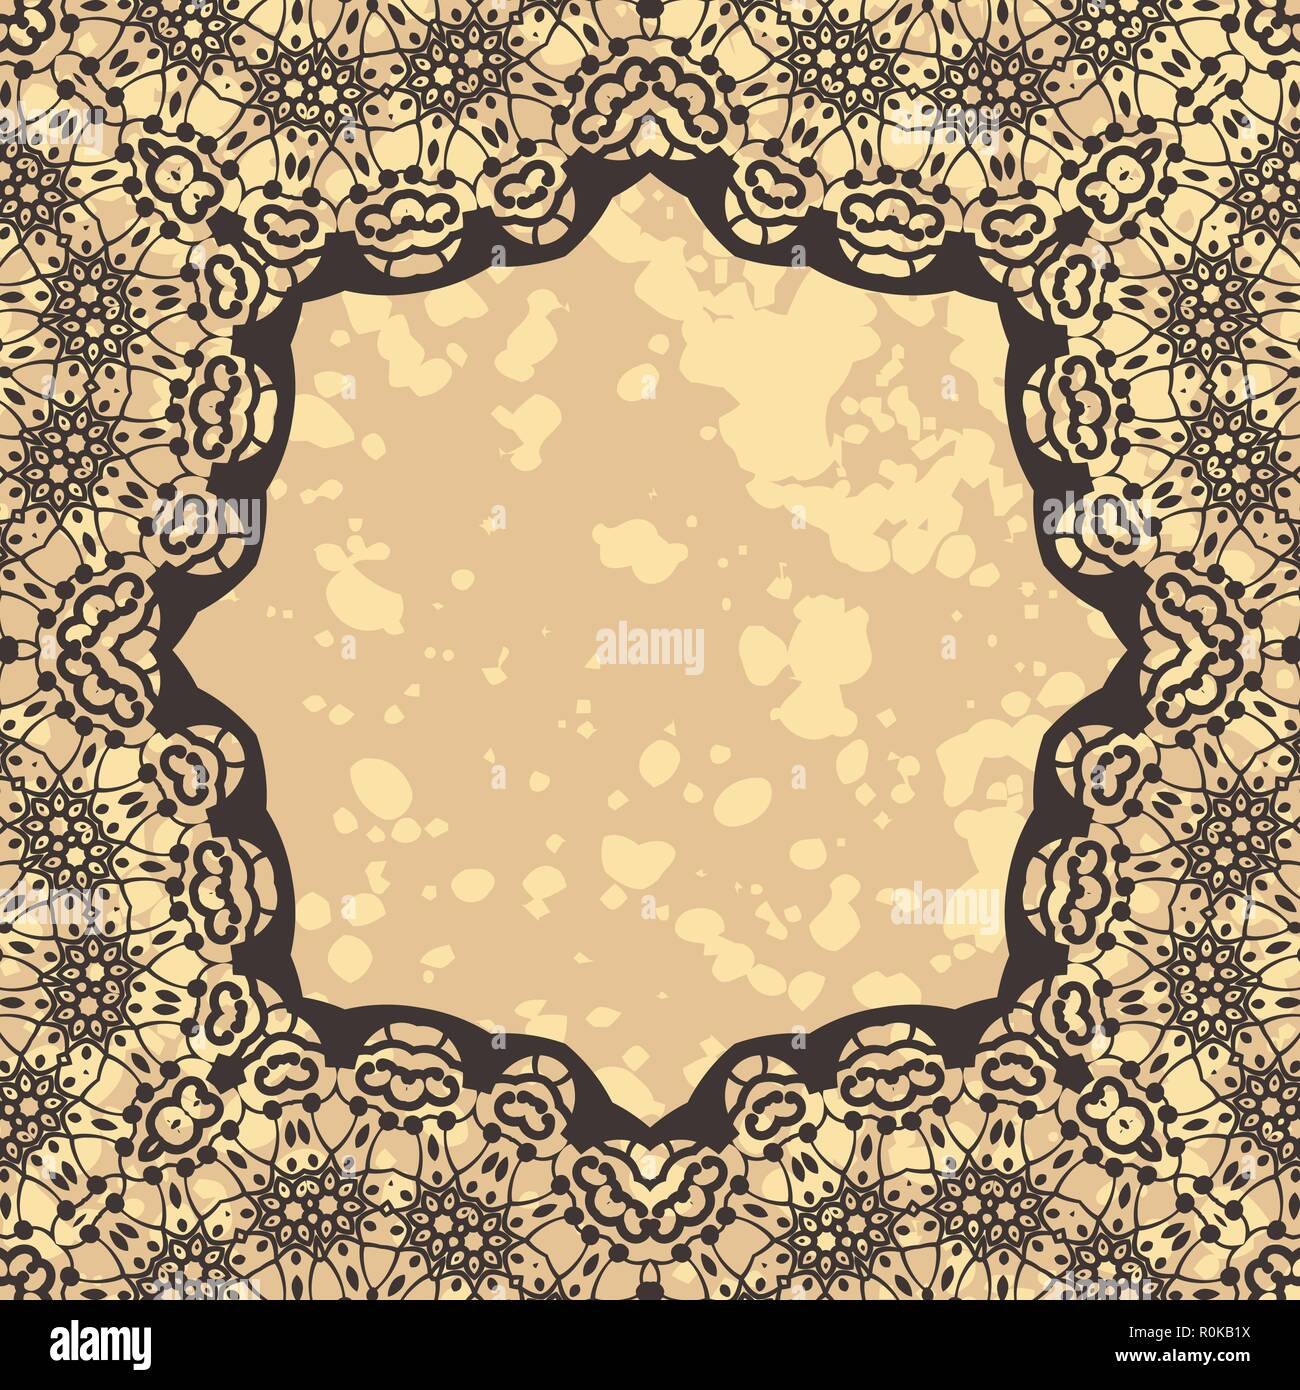 Stylized Elegant Islamic Template Design In Henna Background Stock